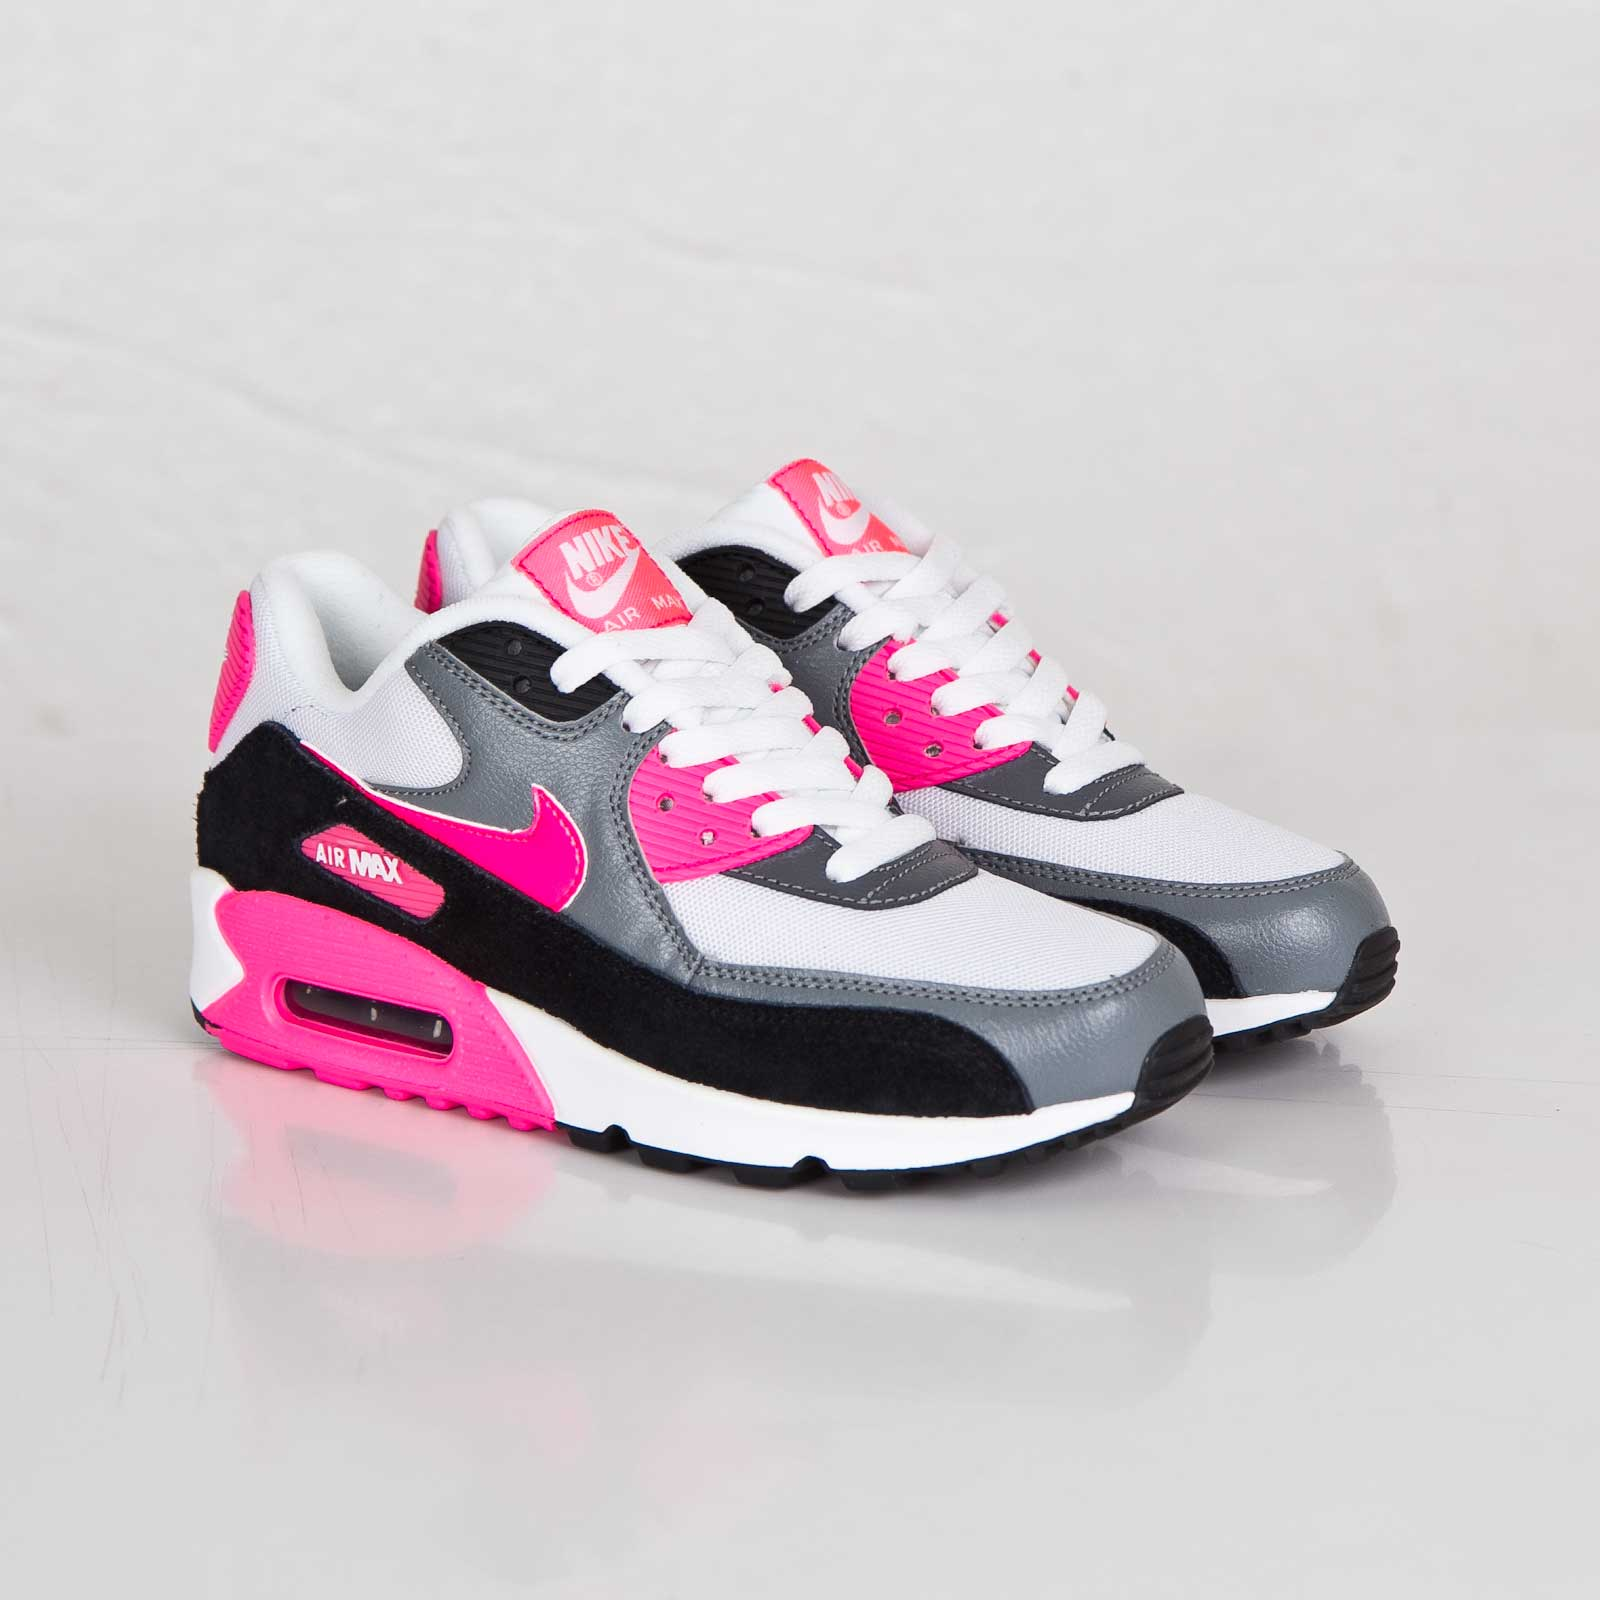 0ba555ae92 Nike Wmns Air Max 90 Essential - 616730-101 - Sneakersnstuff ...